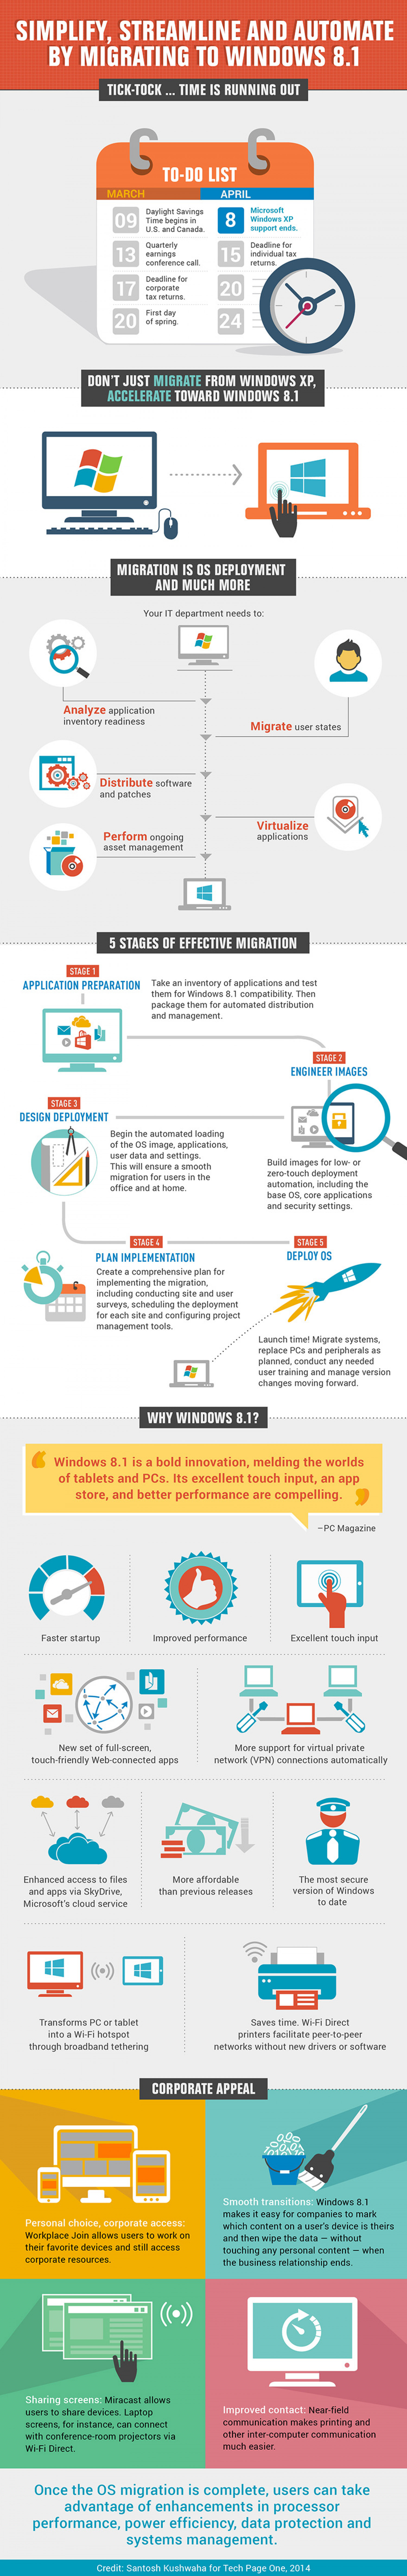 Migrating to Windows 8.1 Infographic